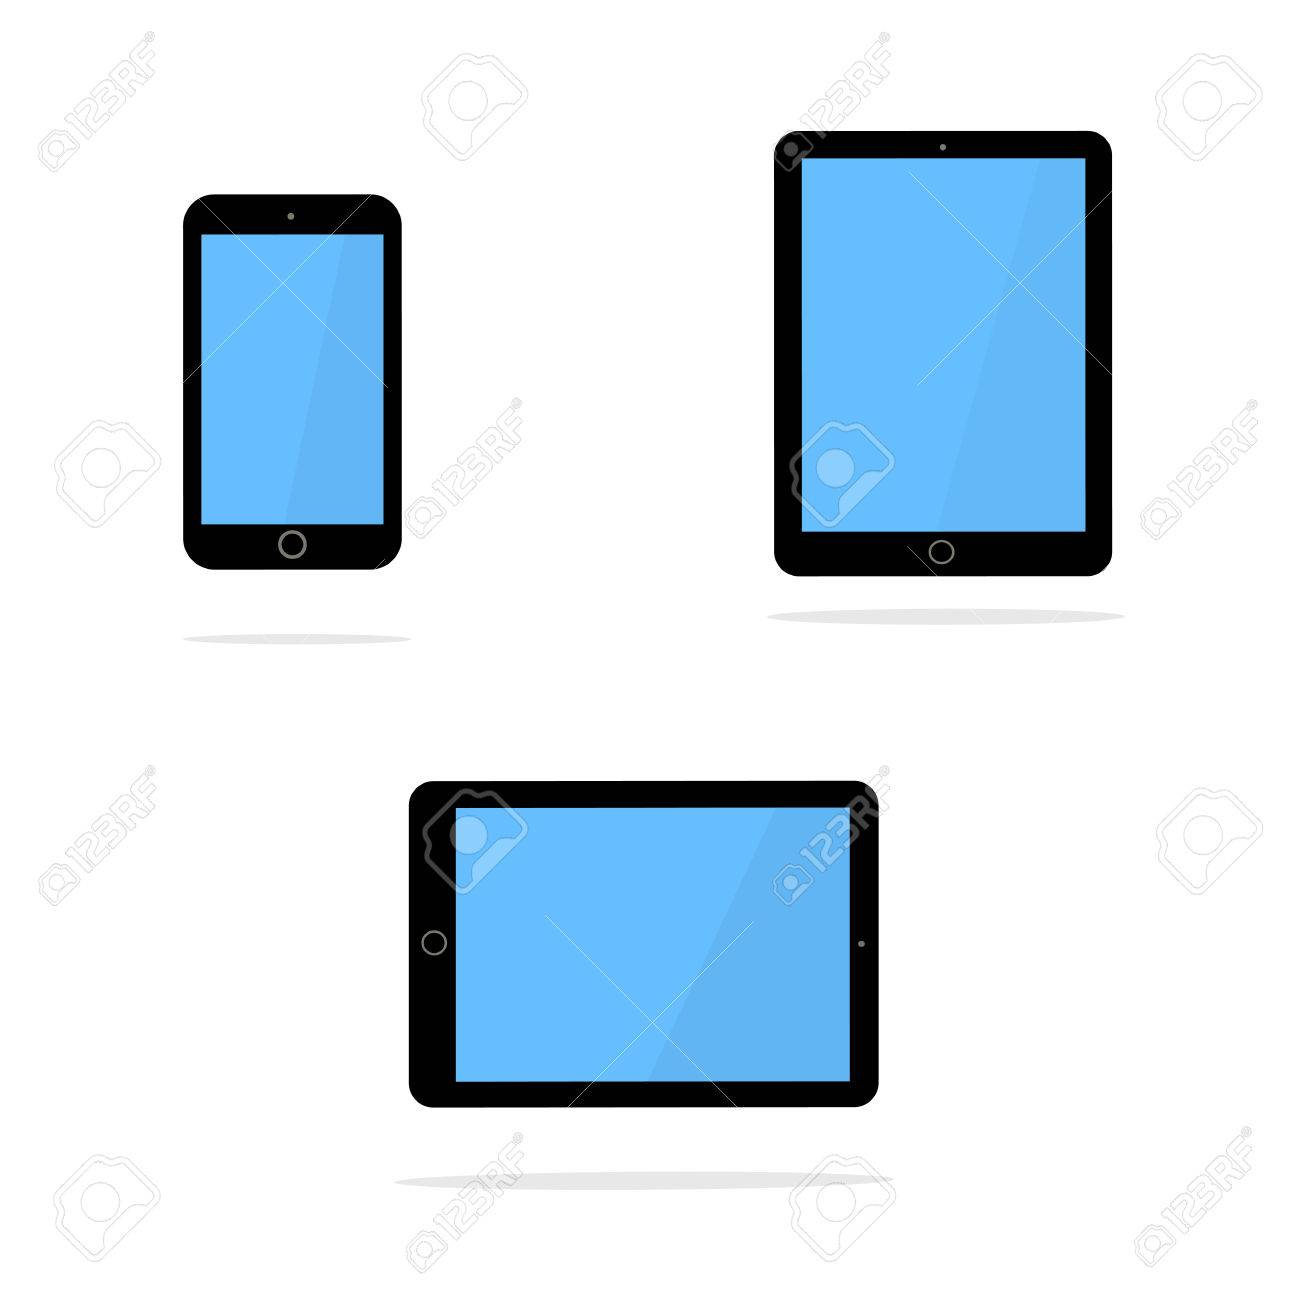 Icons of black smart phone and tablet with blank screen in ipad